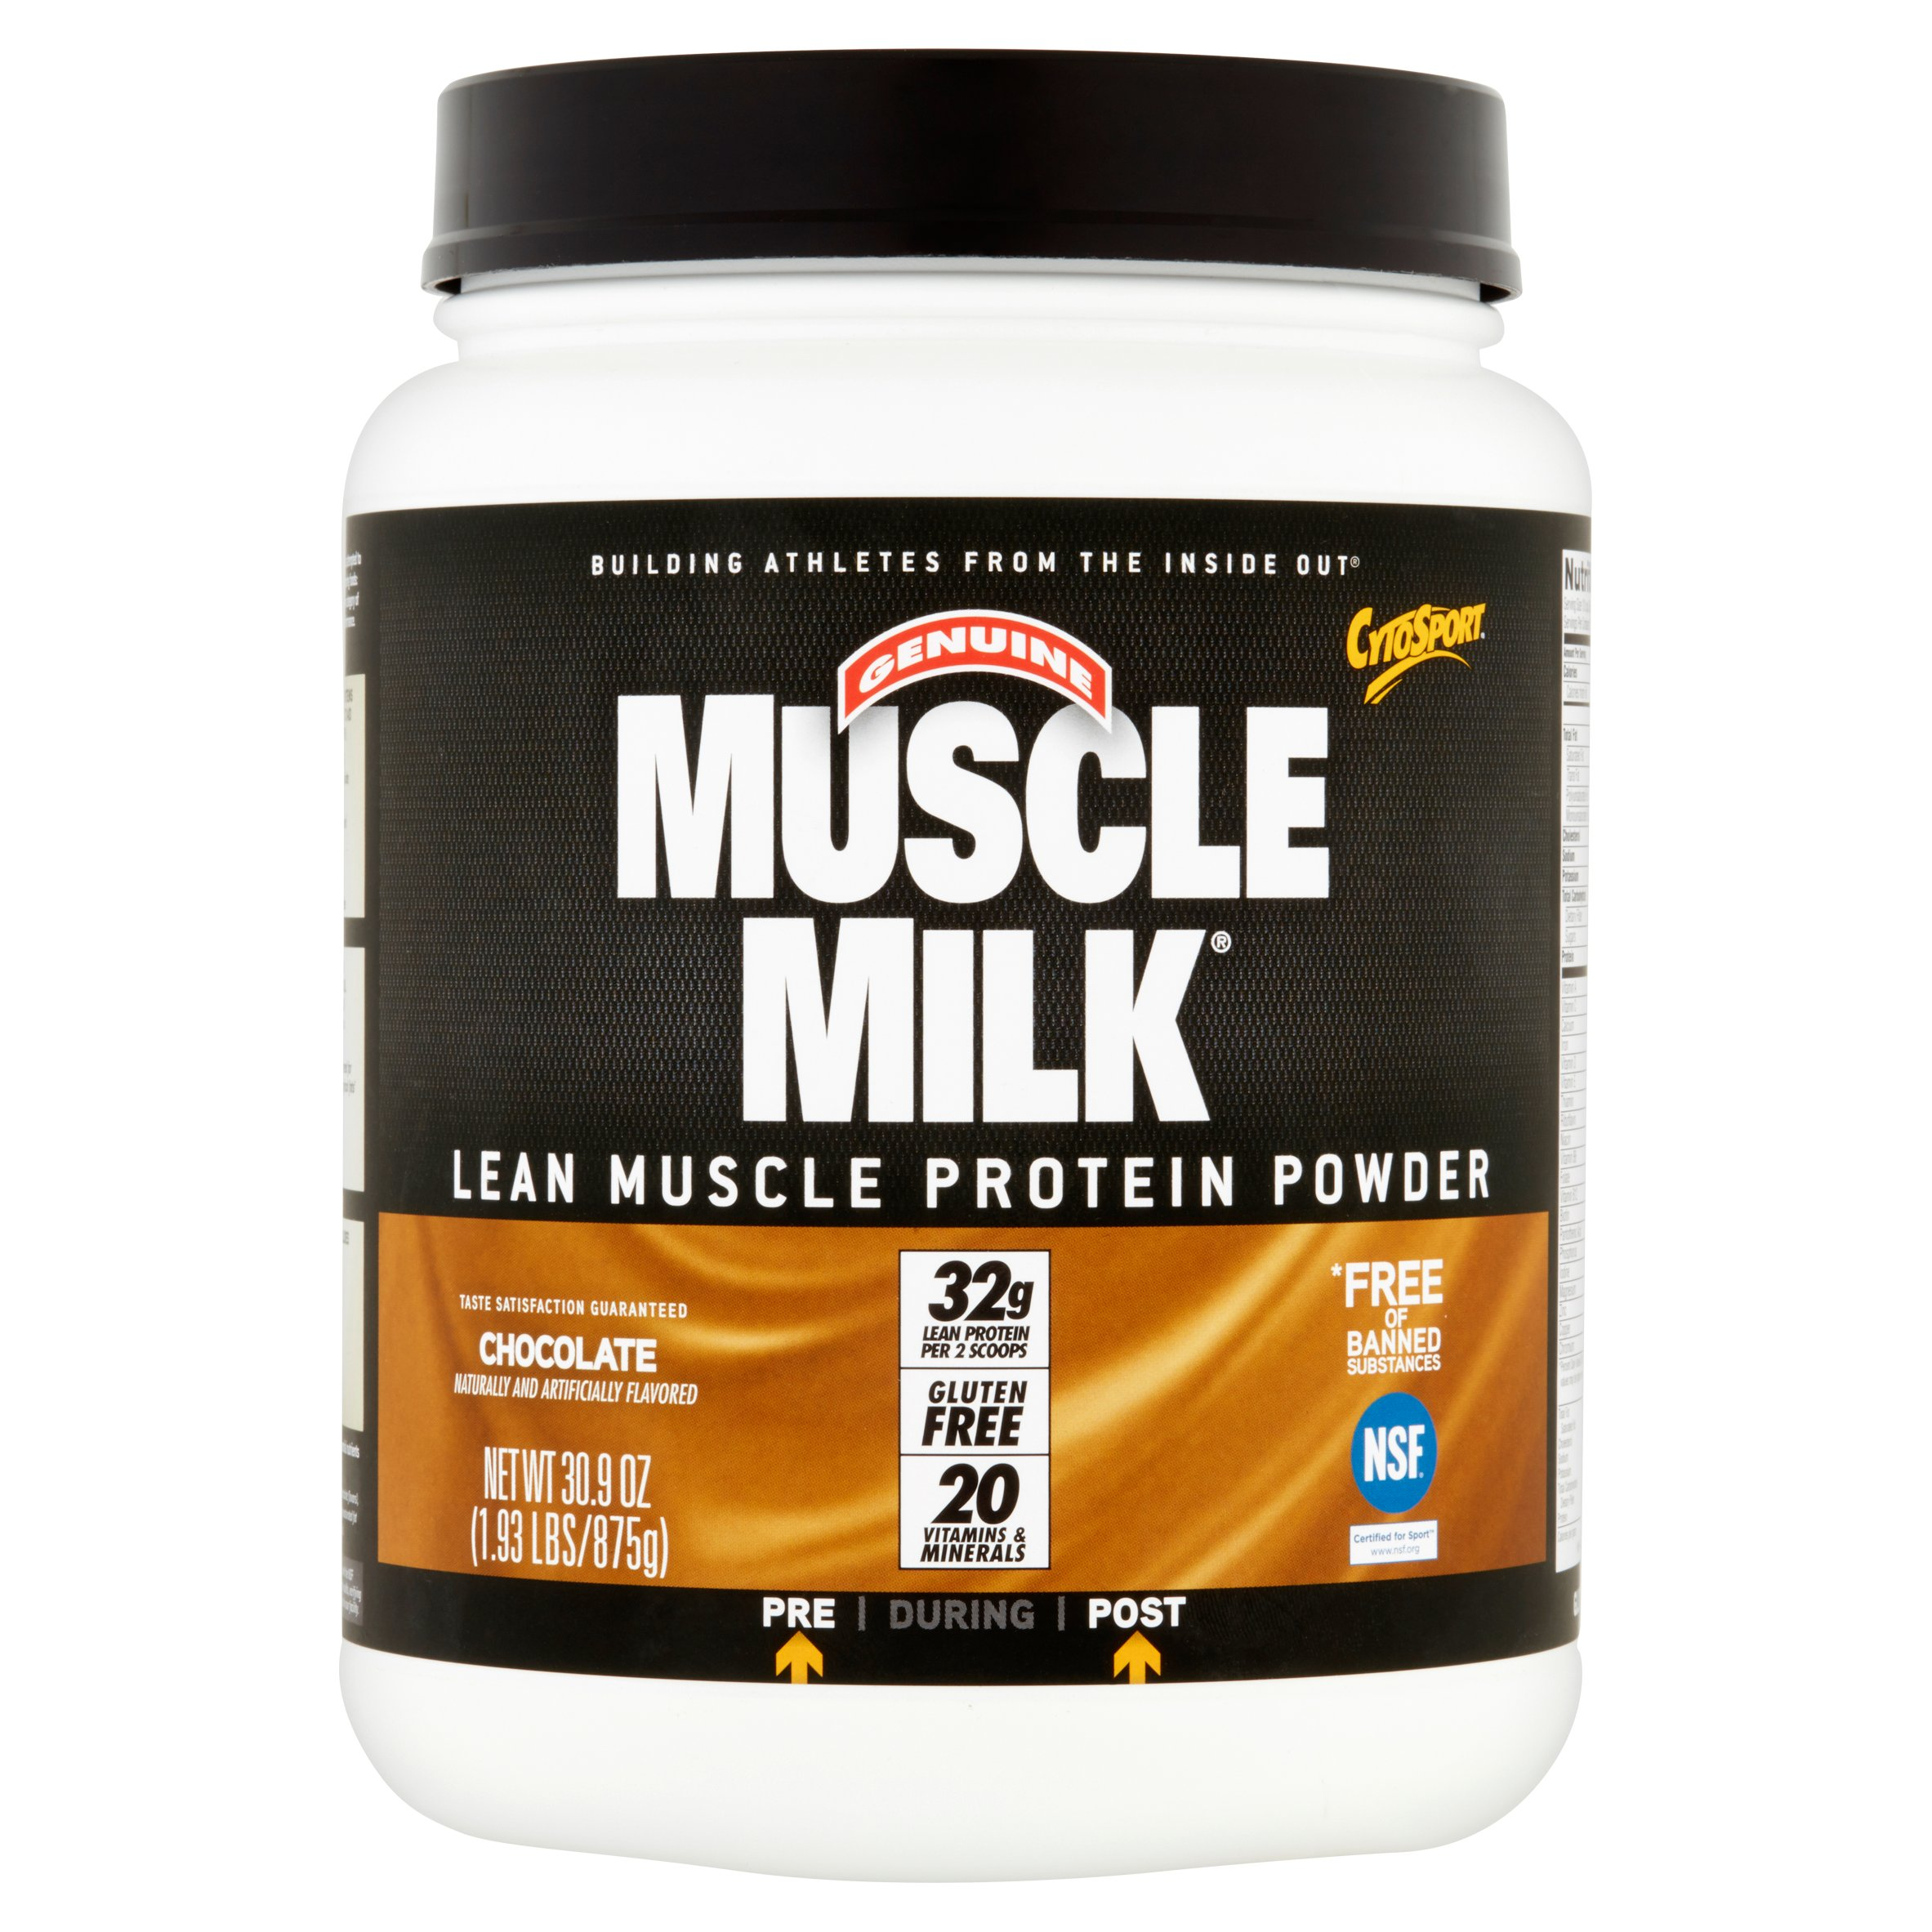 Muscle Milk Chocolate Lean Muscle Protein Powder, 30.9 oz ...